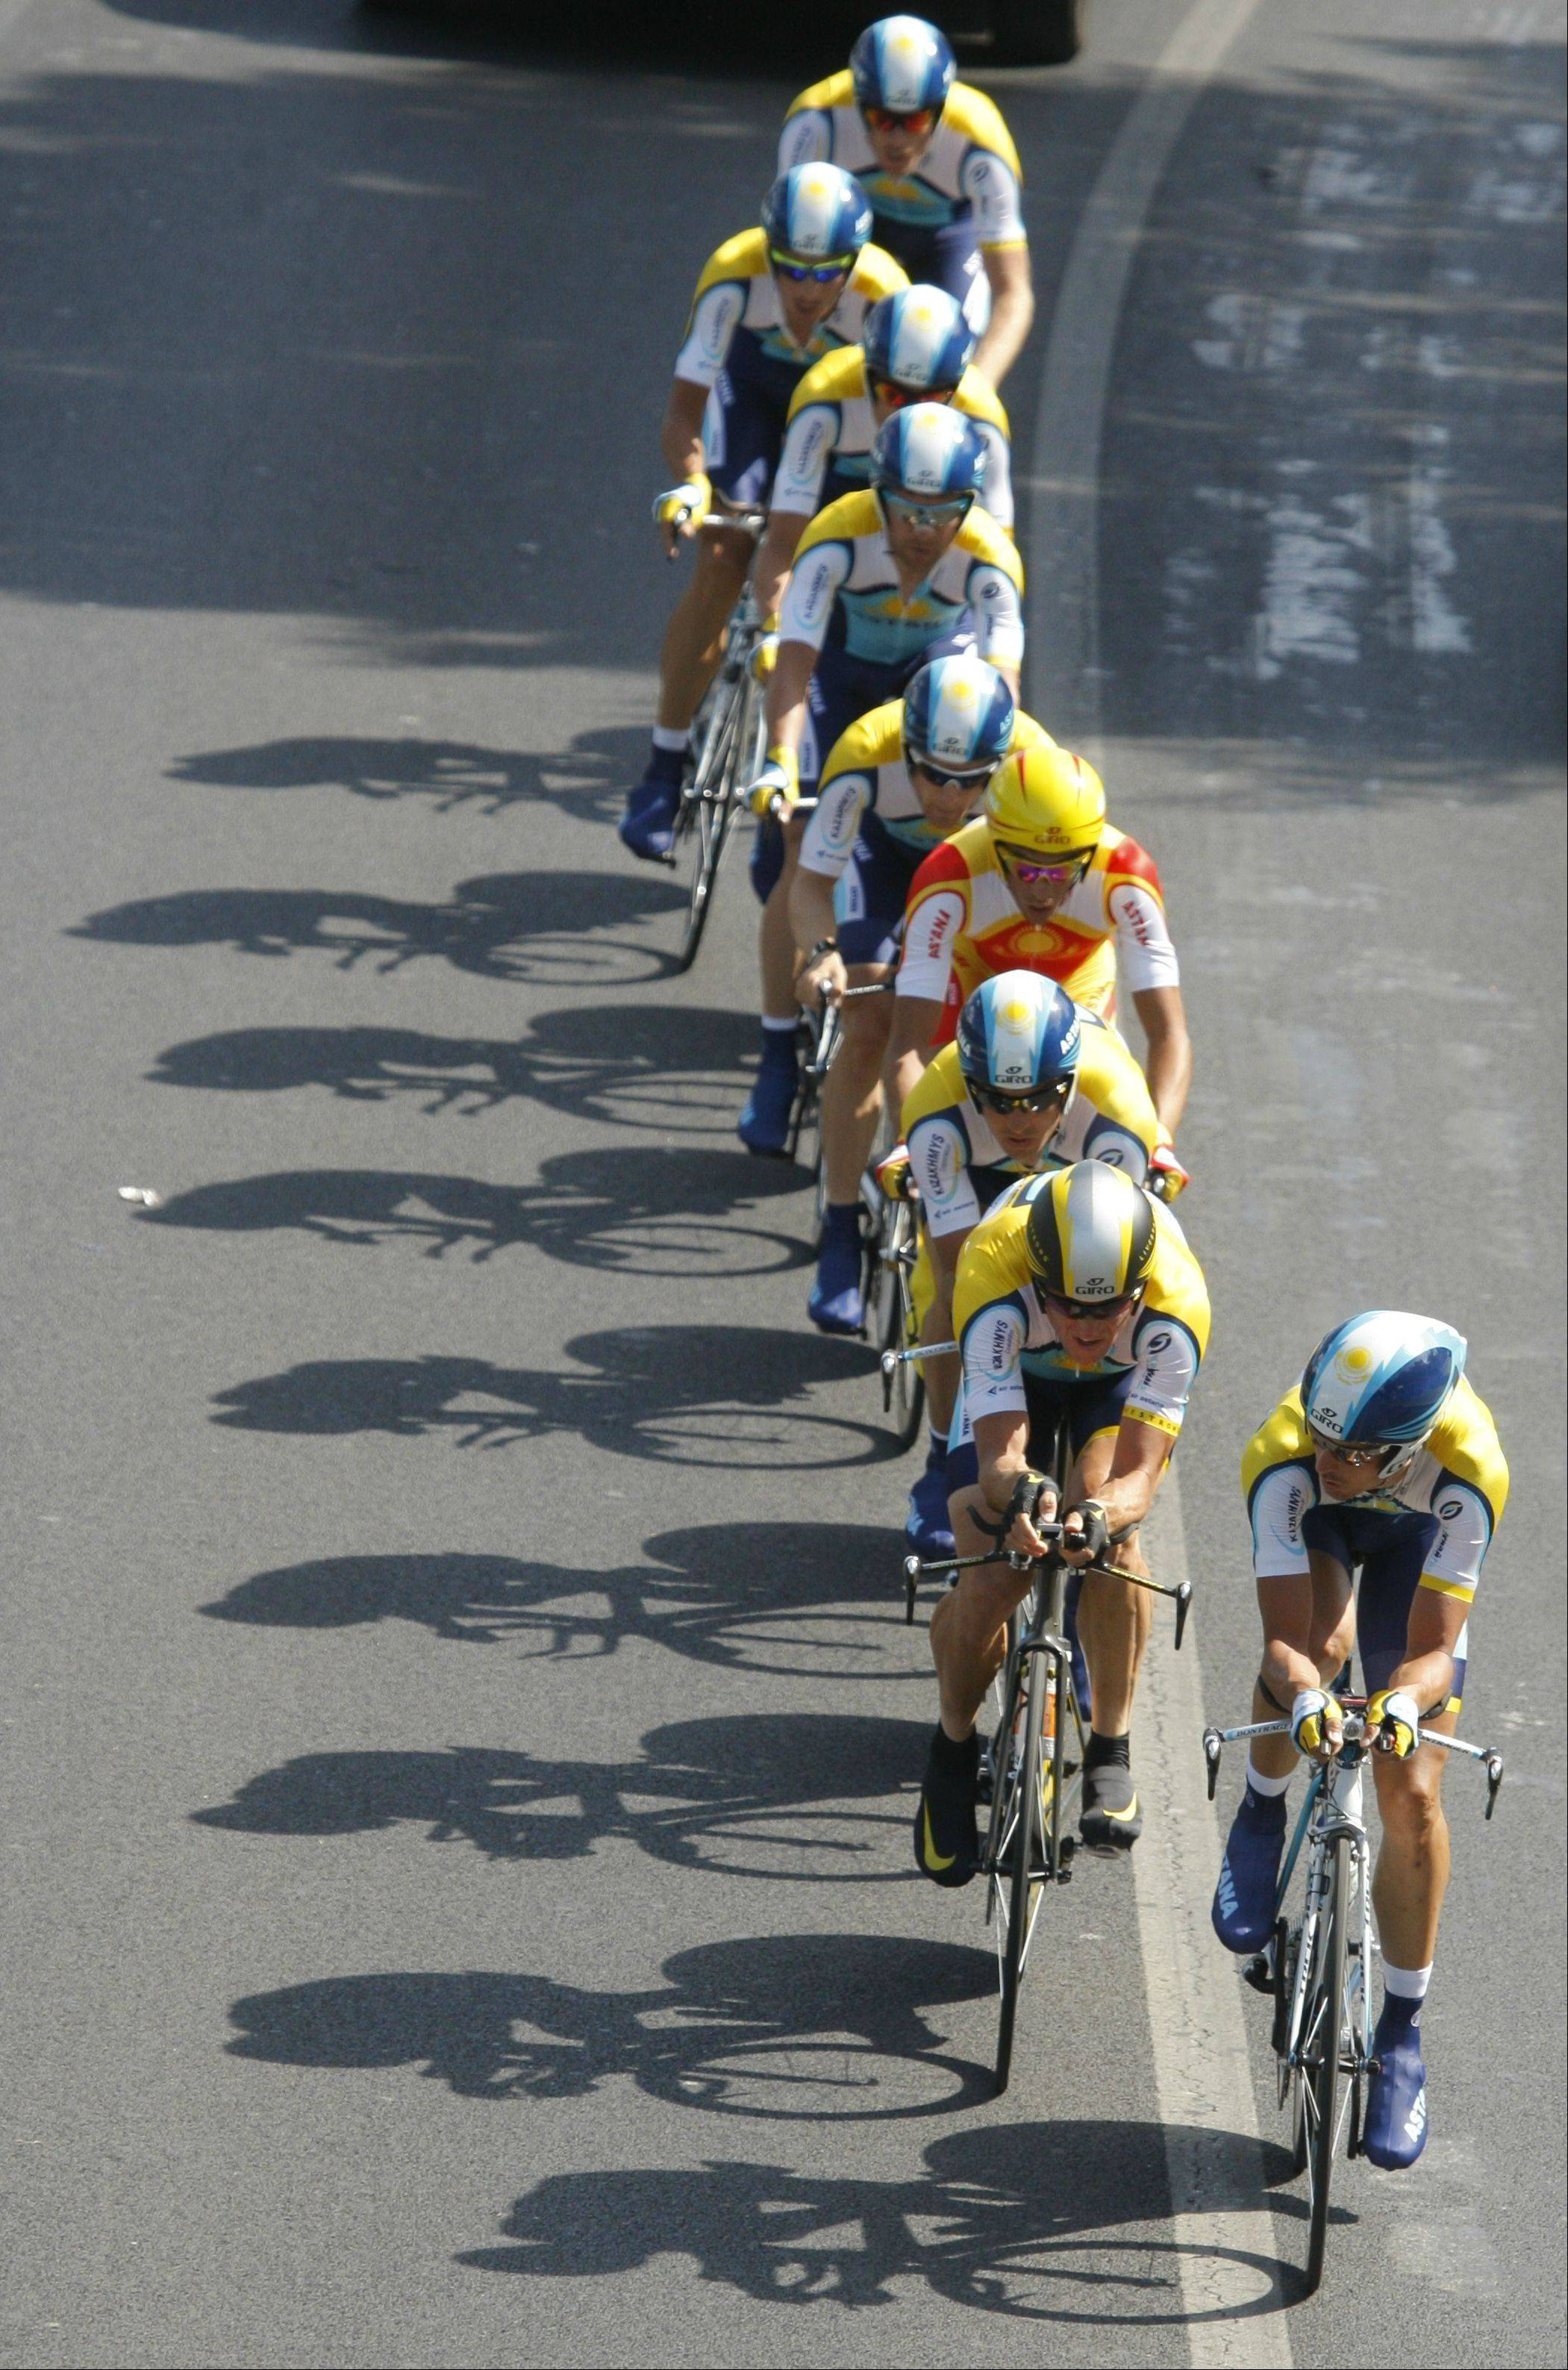 American seven-time Tour de France winner Lance Armstrong, second in row, rides with his Astana teammates during the fourth stage of the Tour de France cycling race, a team time-trial over 39 kilometers (24.2 miles) with start and finish in Montpellier, southern France, Tuesday July 7, 2009.